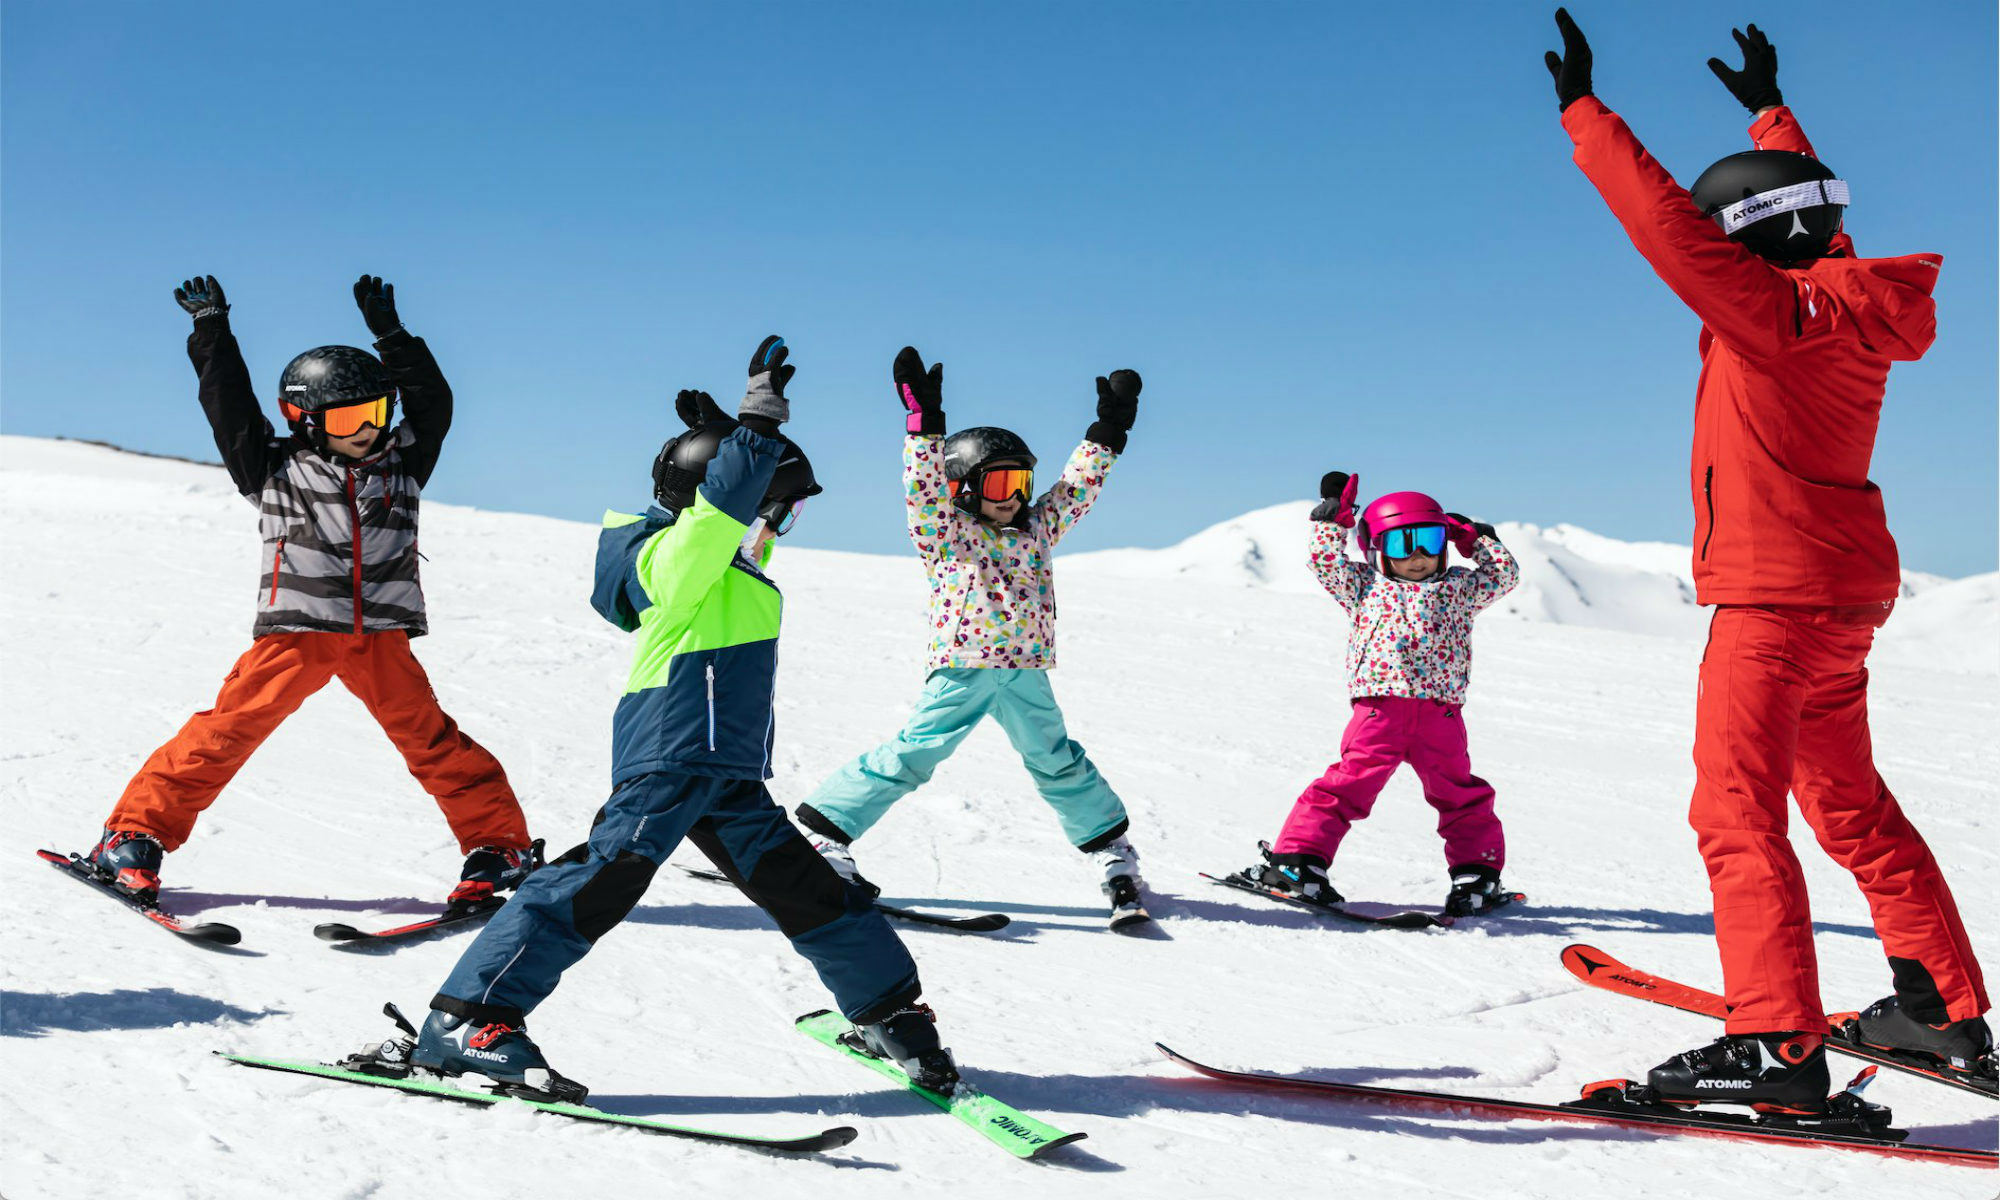 Fully Inclusive Learn To Ski in Arinsal: Andorra ski holiday for beginners